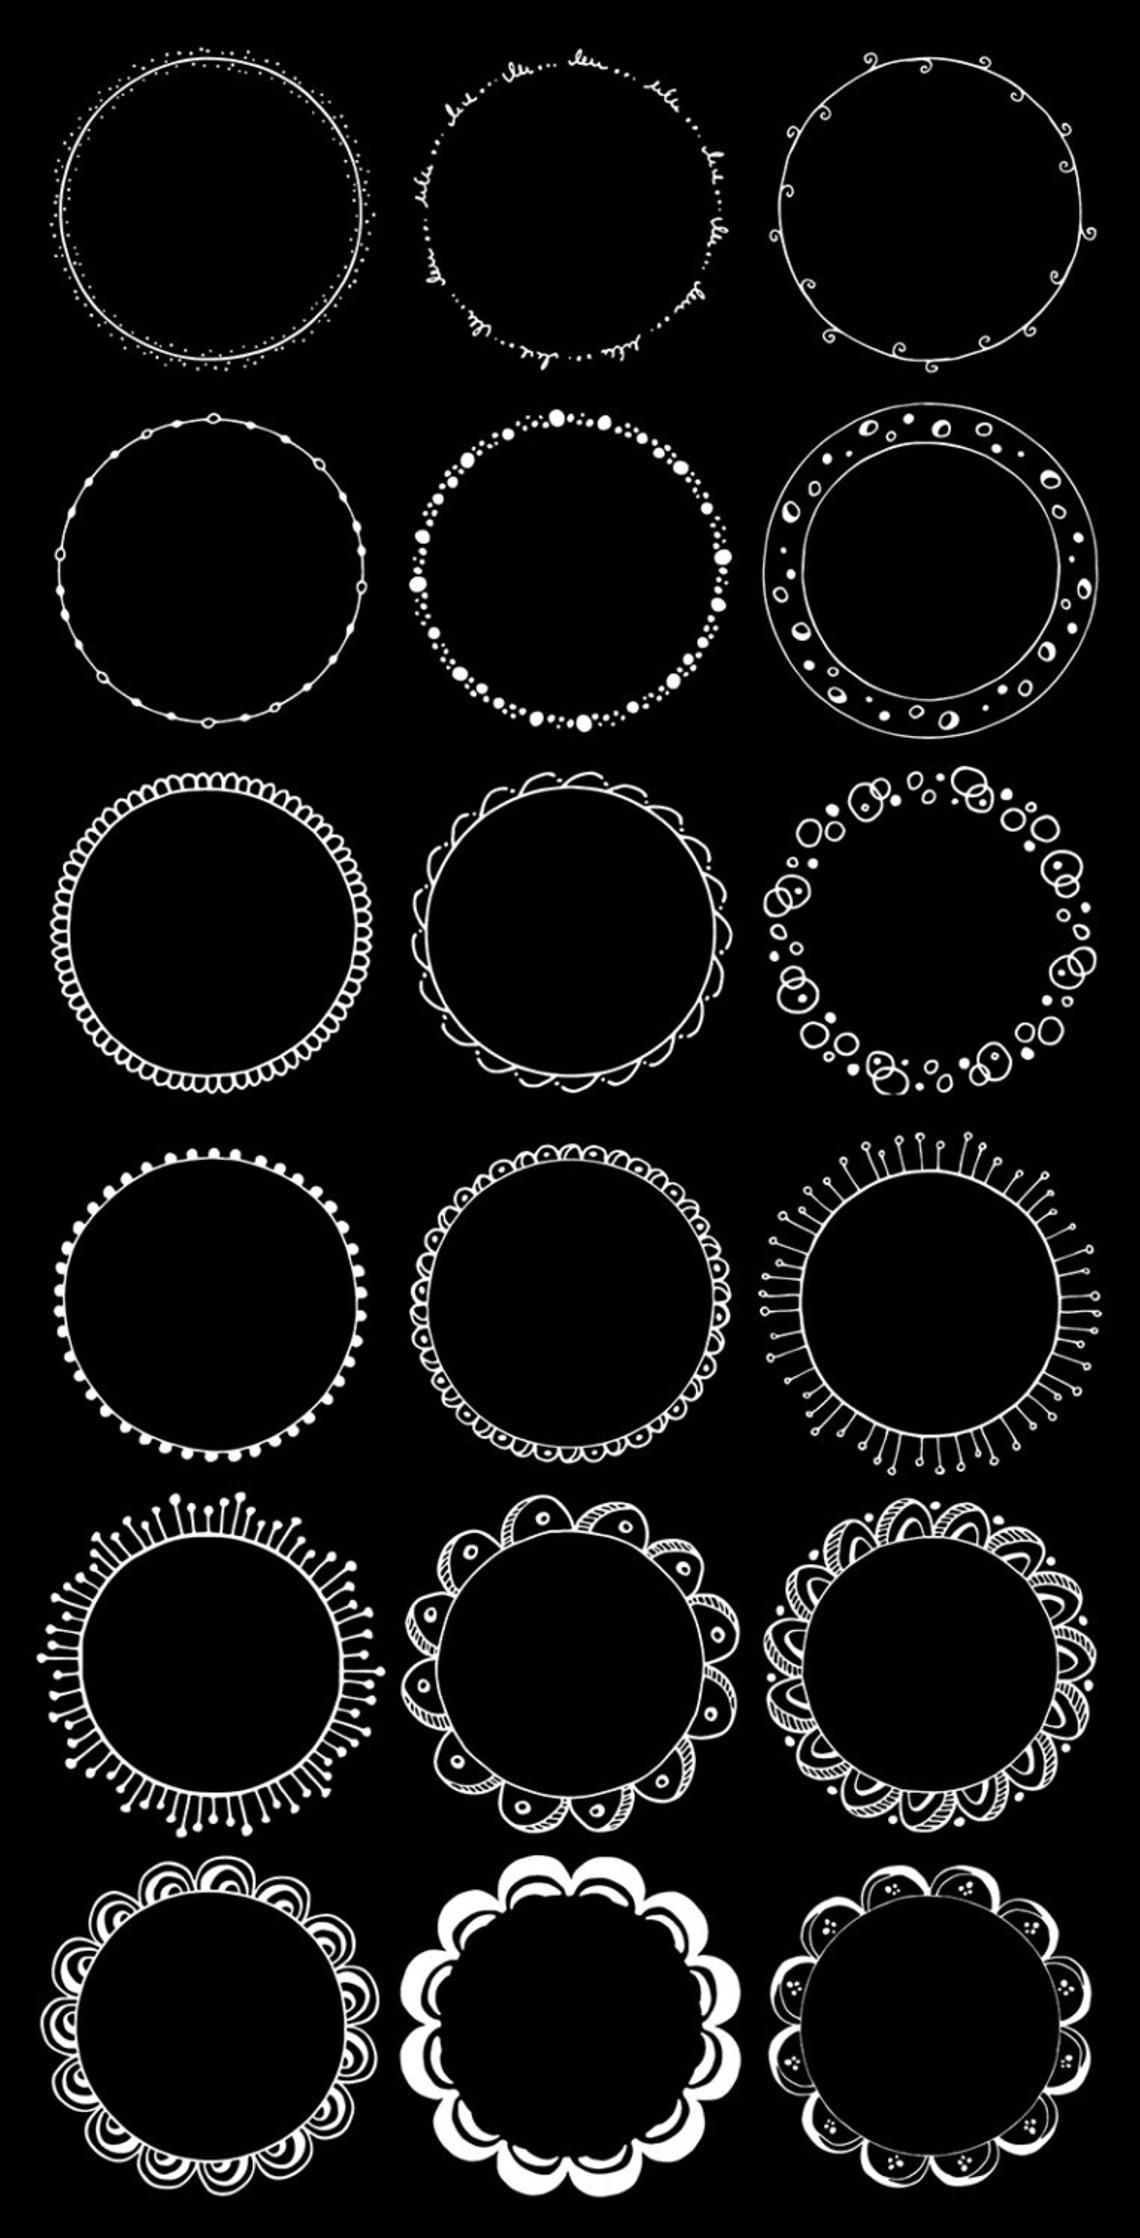 Round Frames Clipart Hand Drawn Circles Clipart Floral Boho Tribal Doodle Clip Art Waves Leaves Flowers Digital Circle Borders Png How To Draw Hands Circle Borders Digital Frame